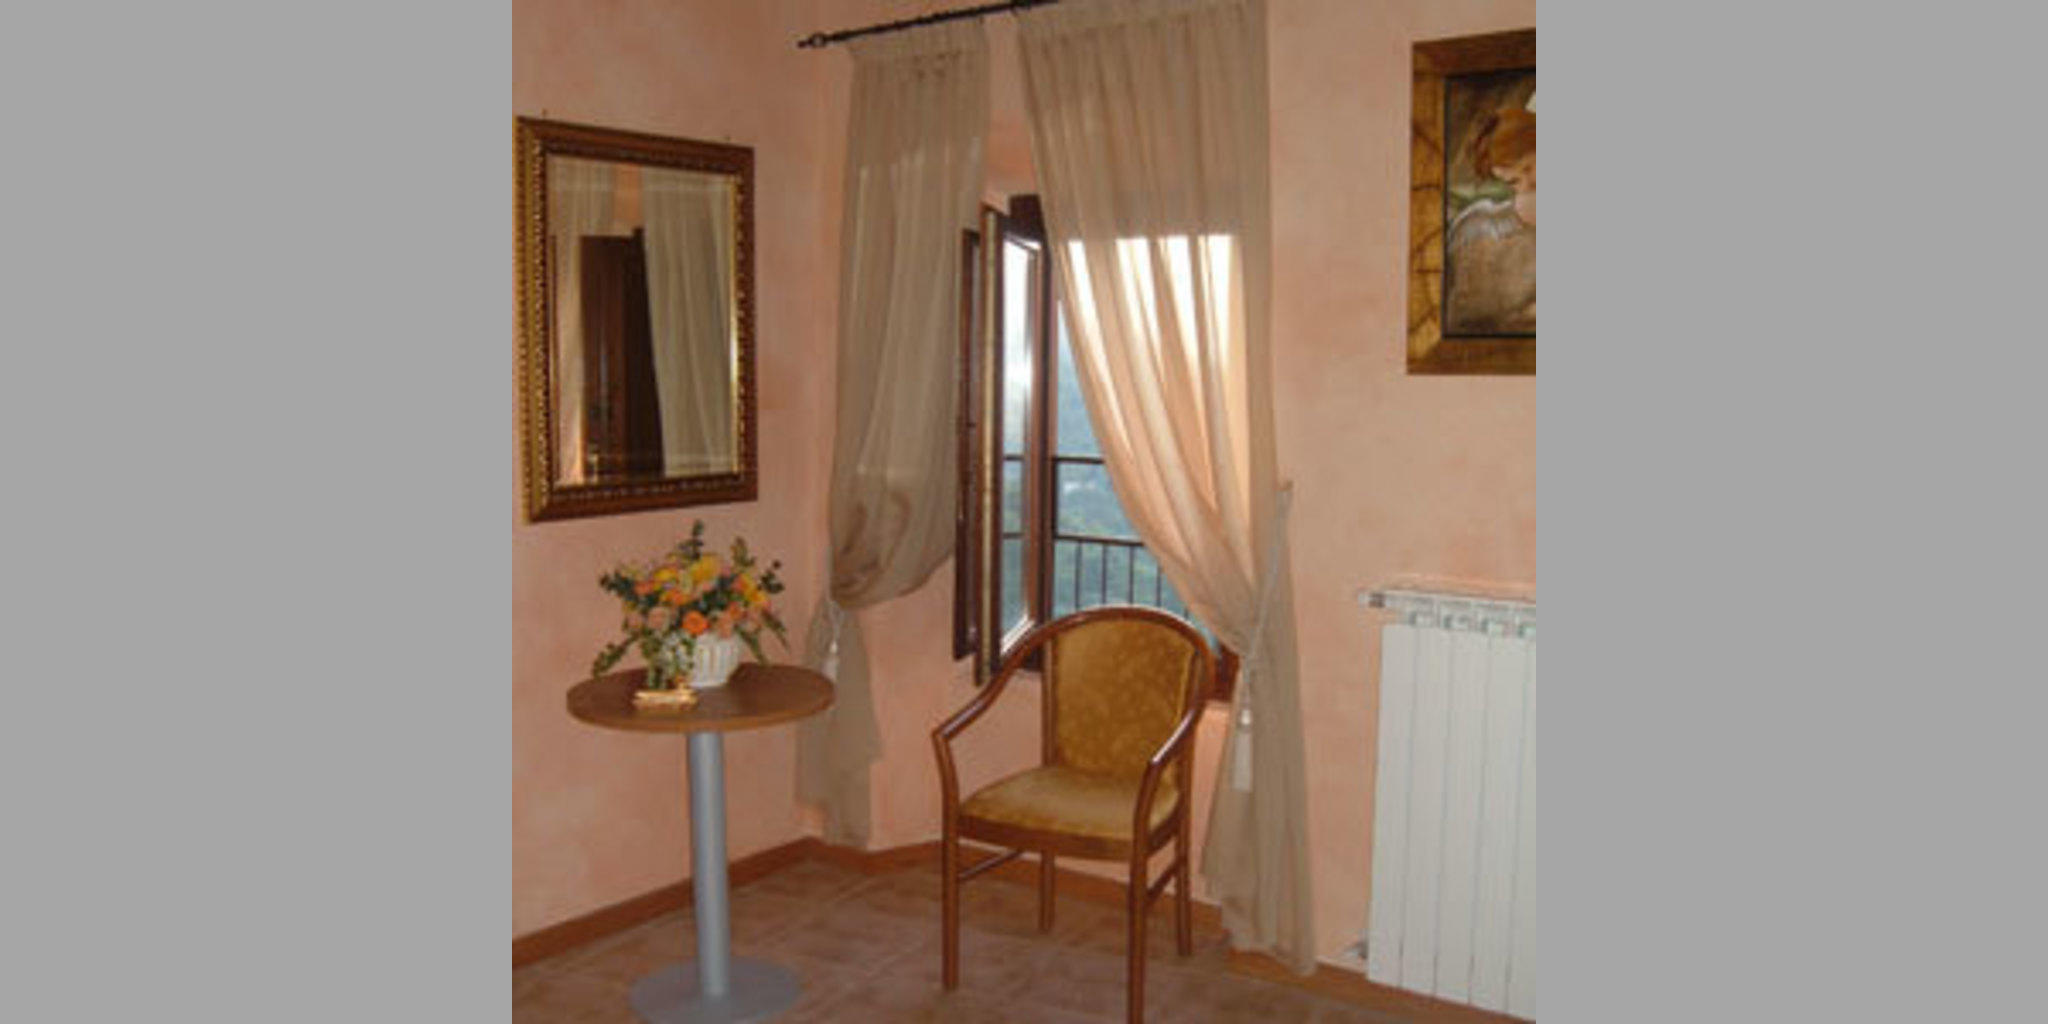 Bed & Breakfast Anticoli Corrado - Olivella 2